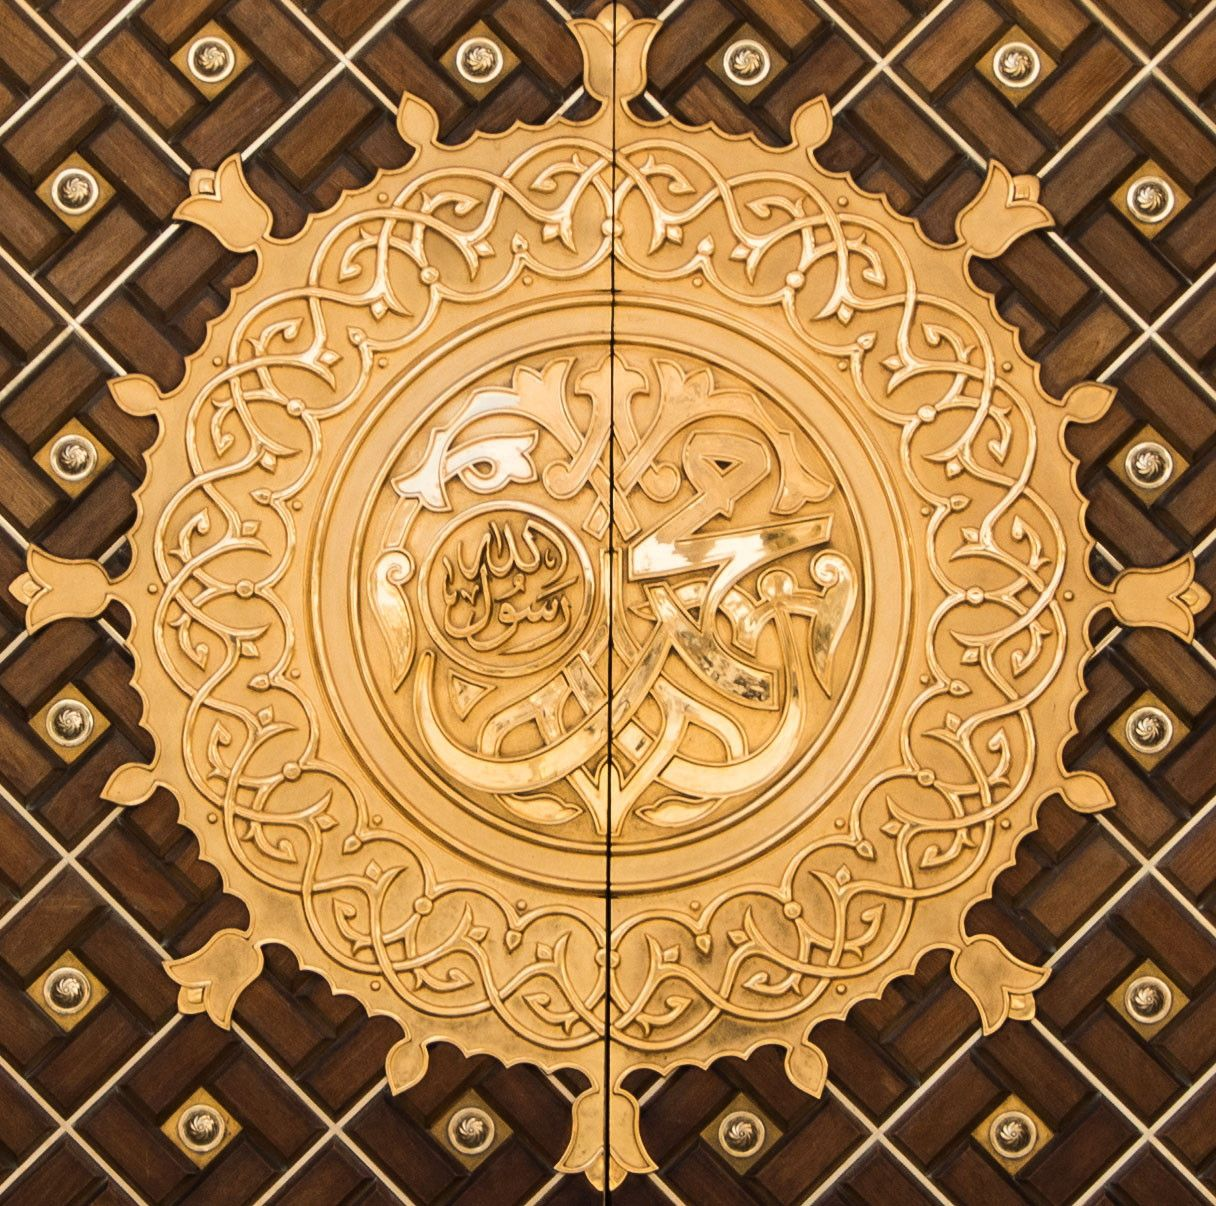 Door of Masjid Nabawi on Saudi Arabia  sc 1 st  Pinterest & Door of Masjid Nabawi on Saudi Arabia | Islamic art | Pinterest ... pezcame.com